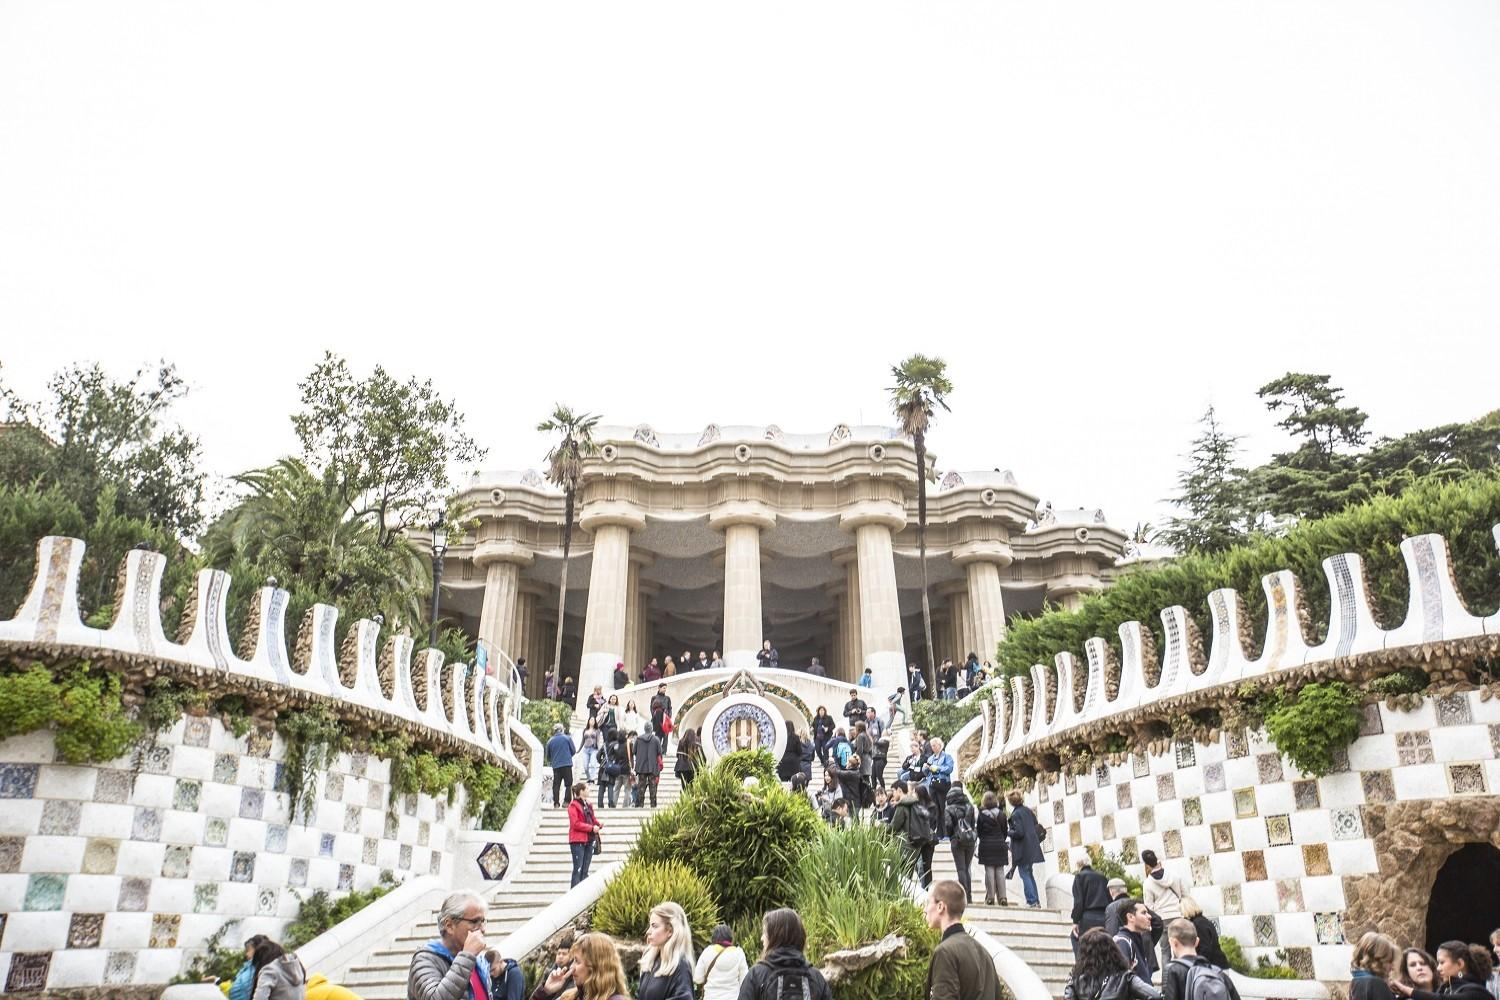 Park Güell